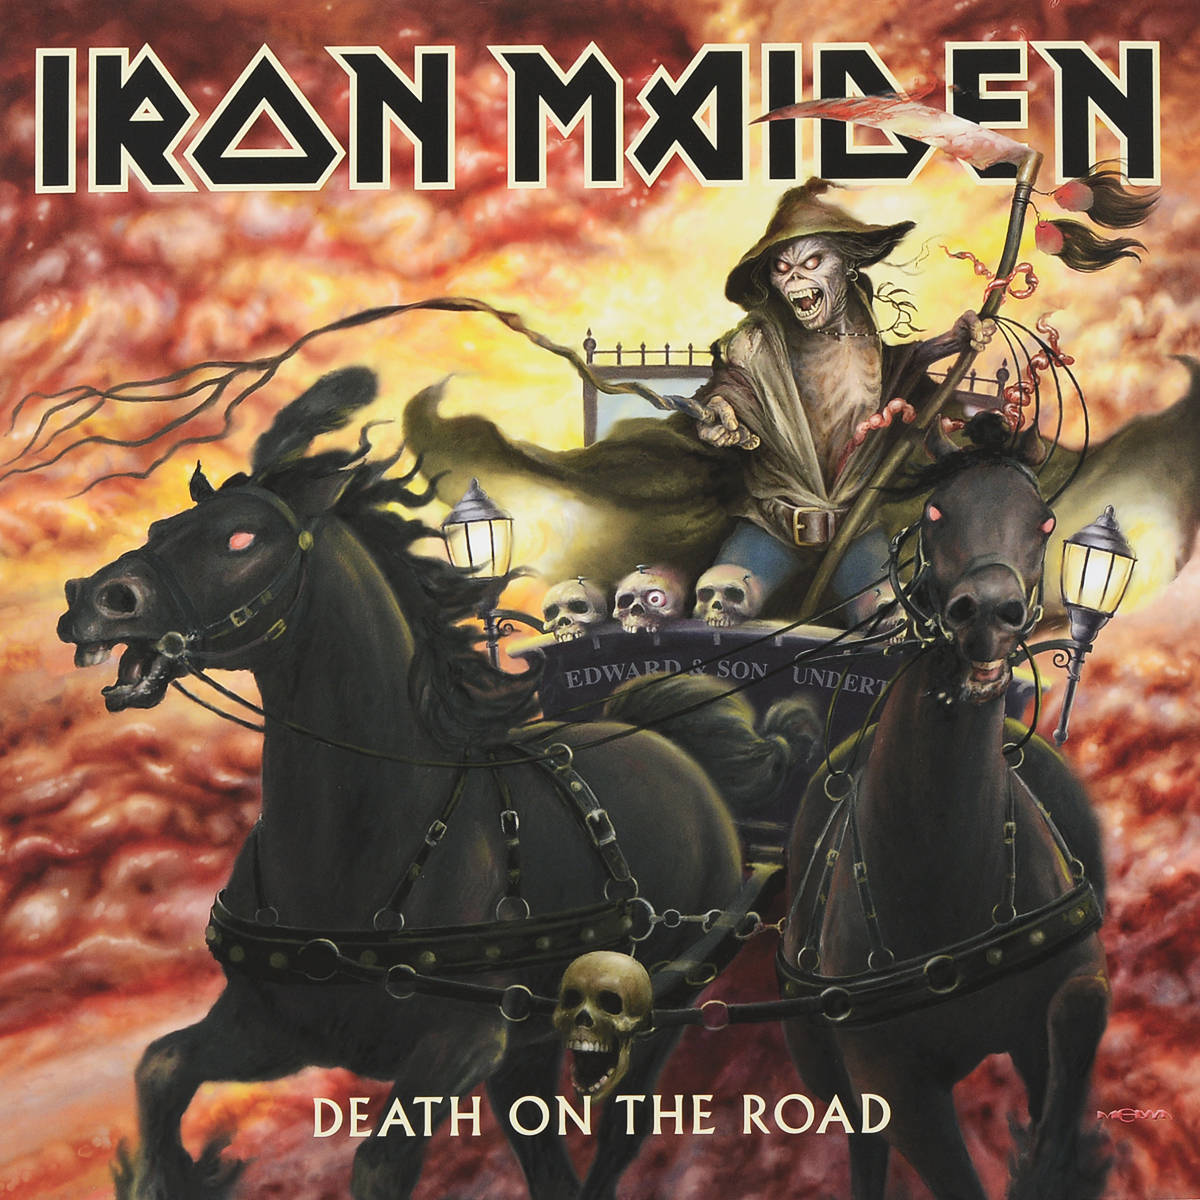 Iron Maiden Iron Maiden. Death On The Road (2 LP) виниловая пластинка iron maiden death on the road